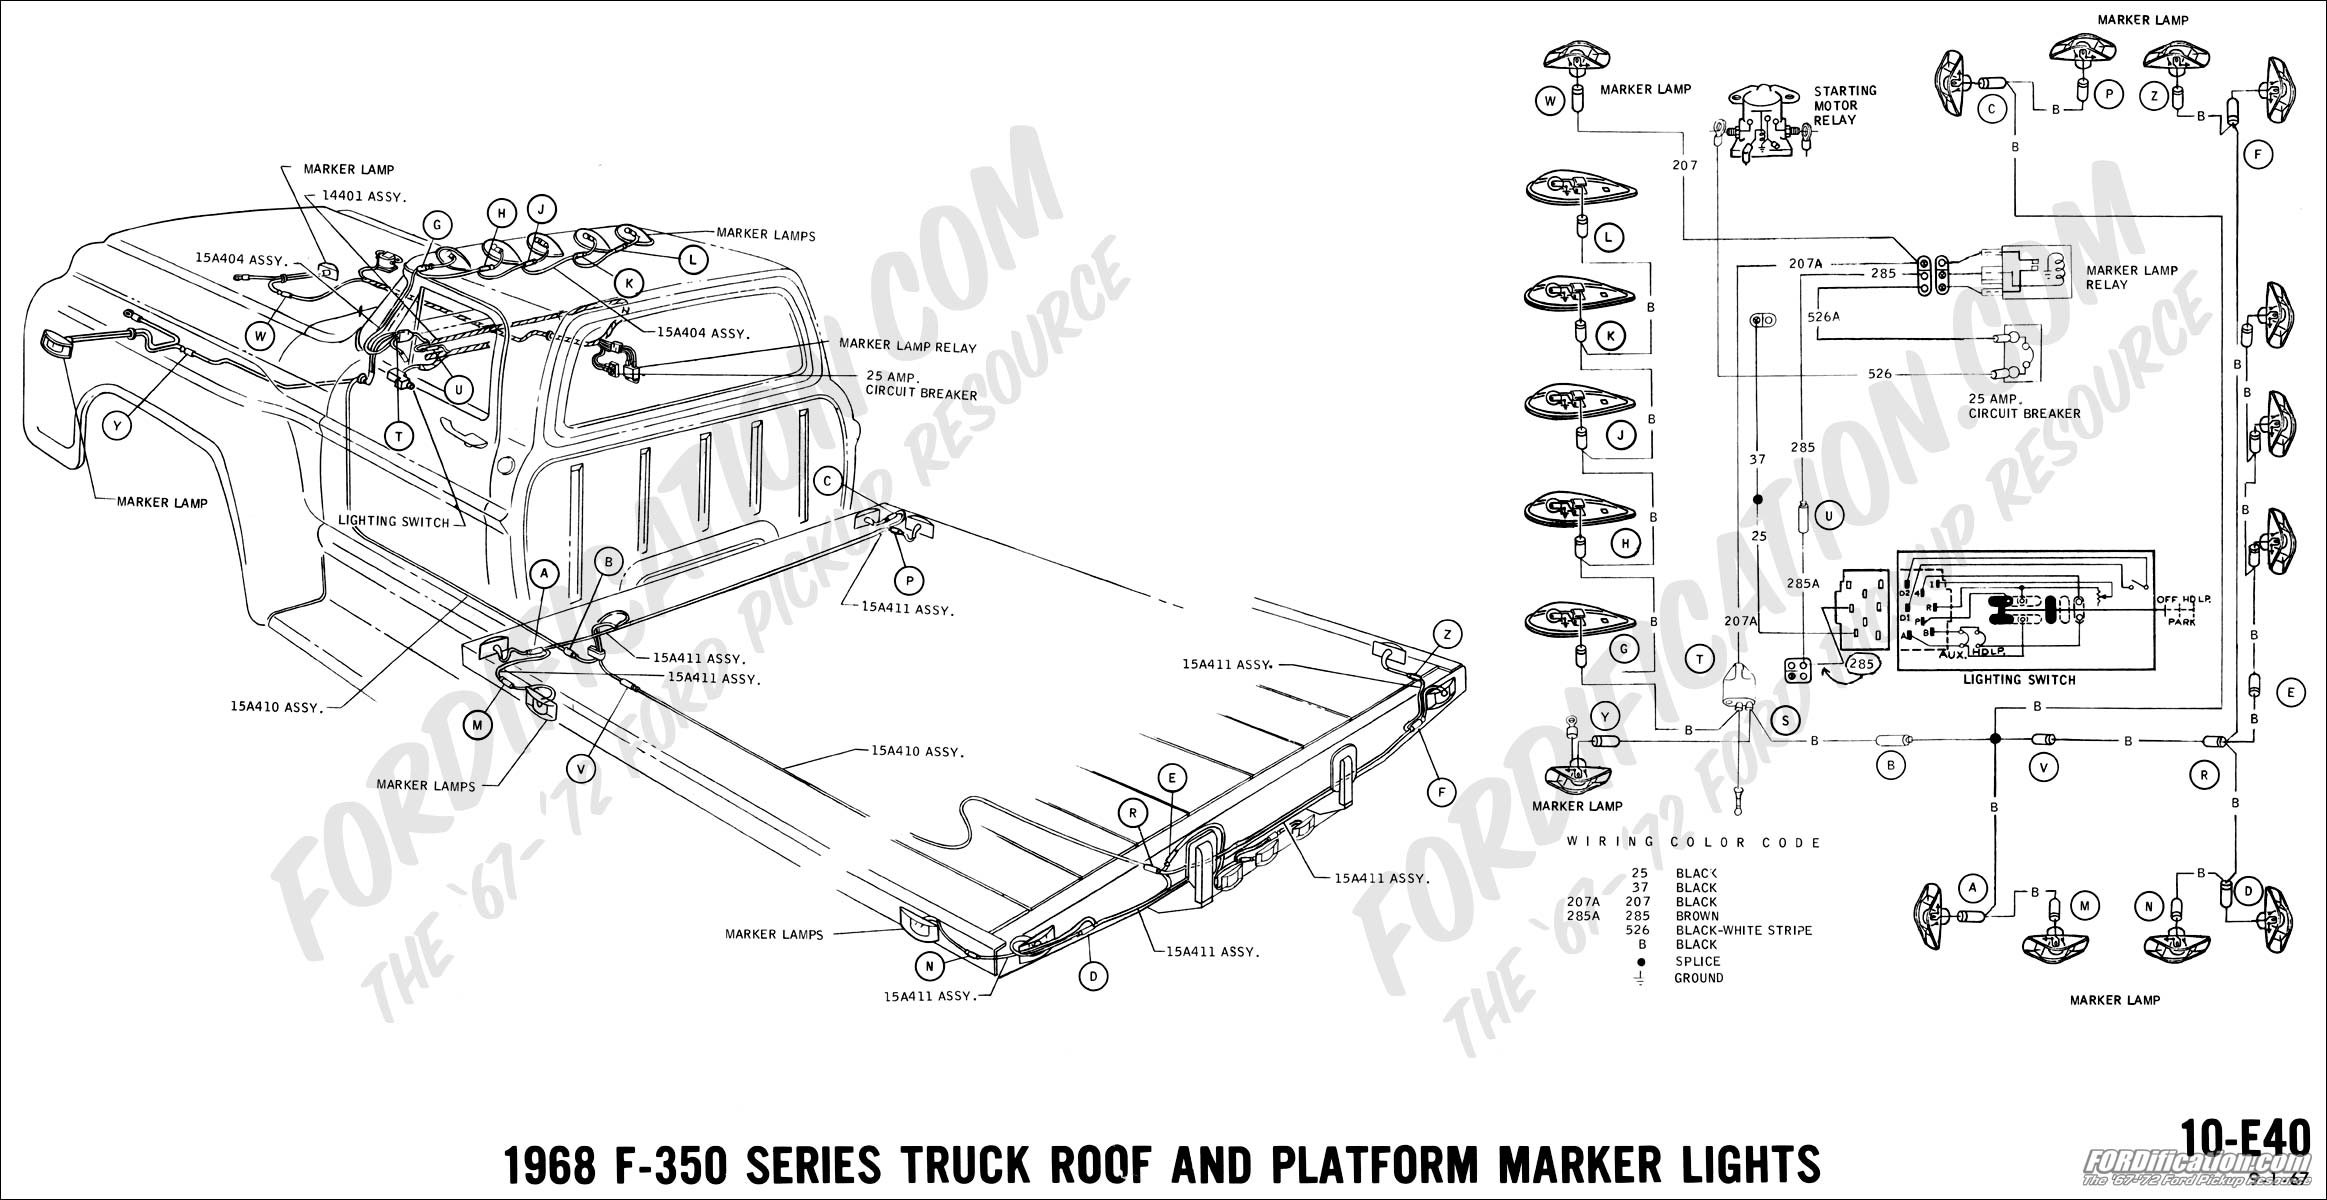 F250 Cab Lights Wiring Harness Free Download • Oasis-dl.co